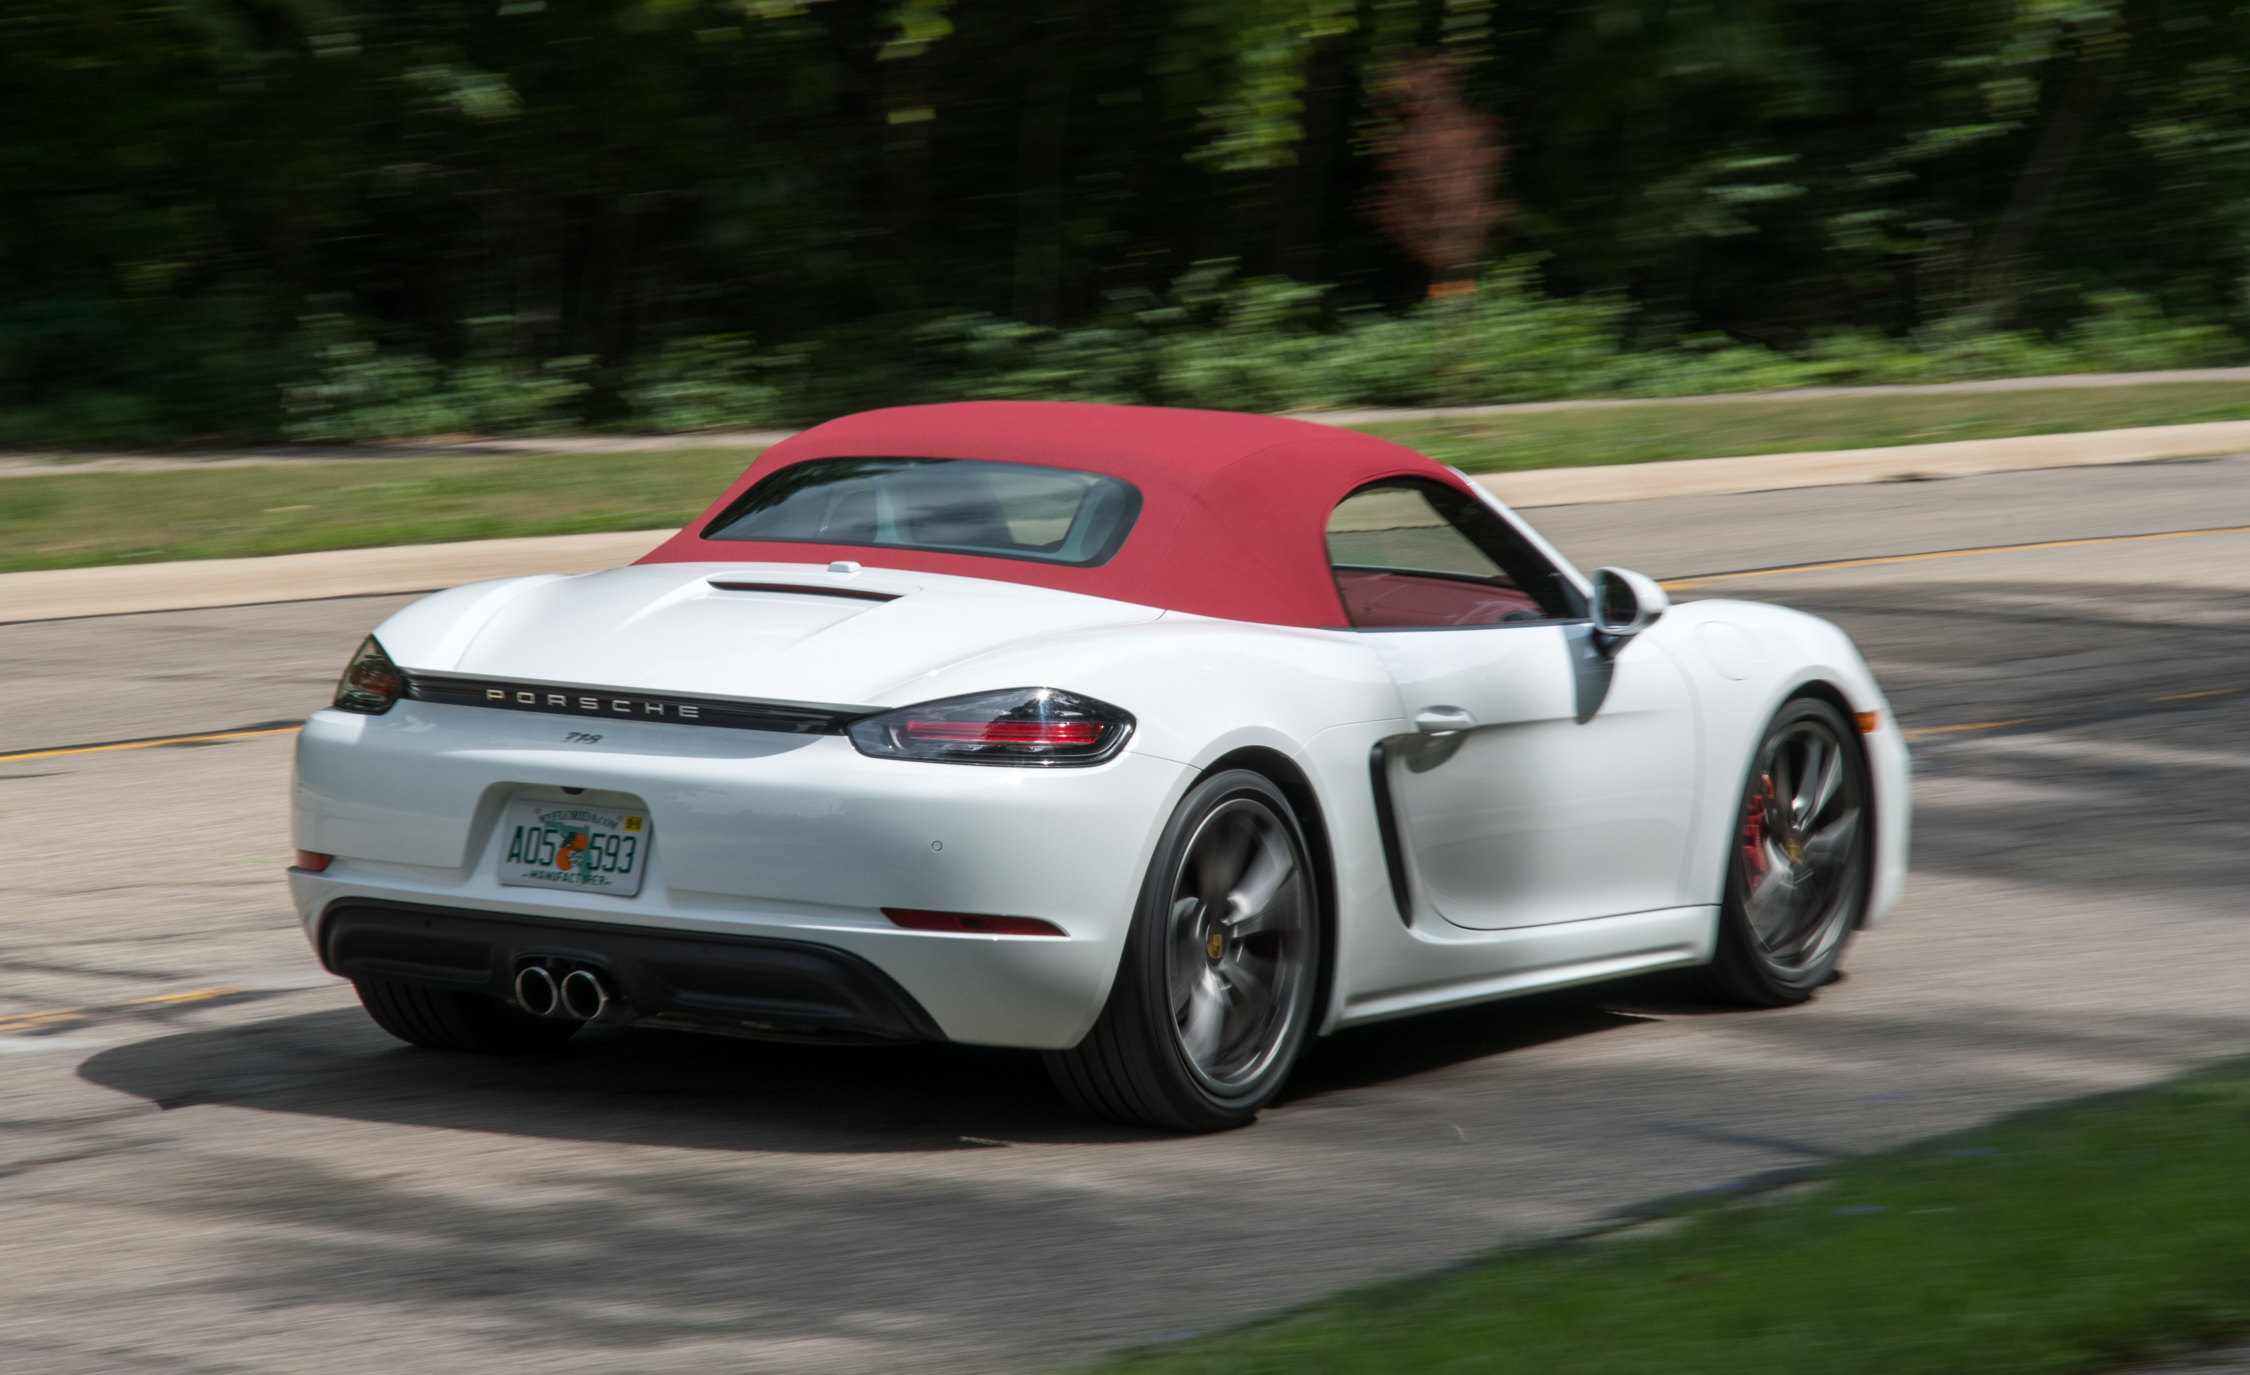 2017 Porsche 718 Boxster (View 67 of 71)